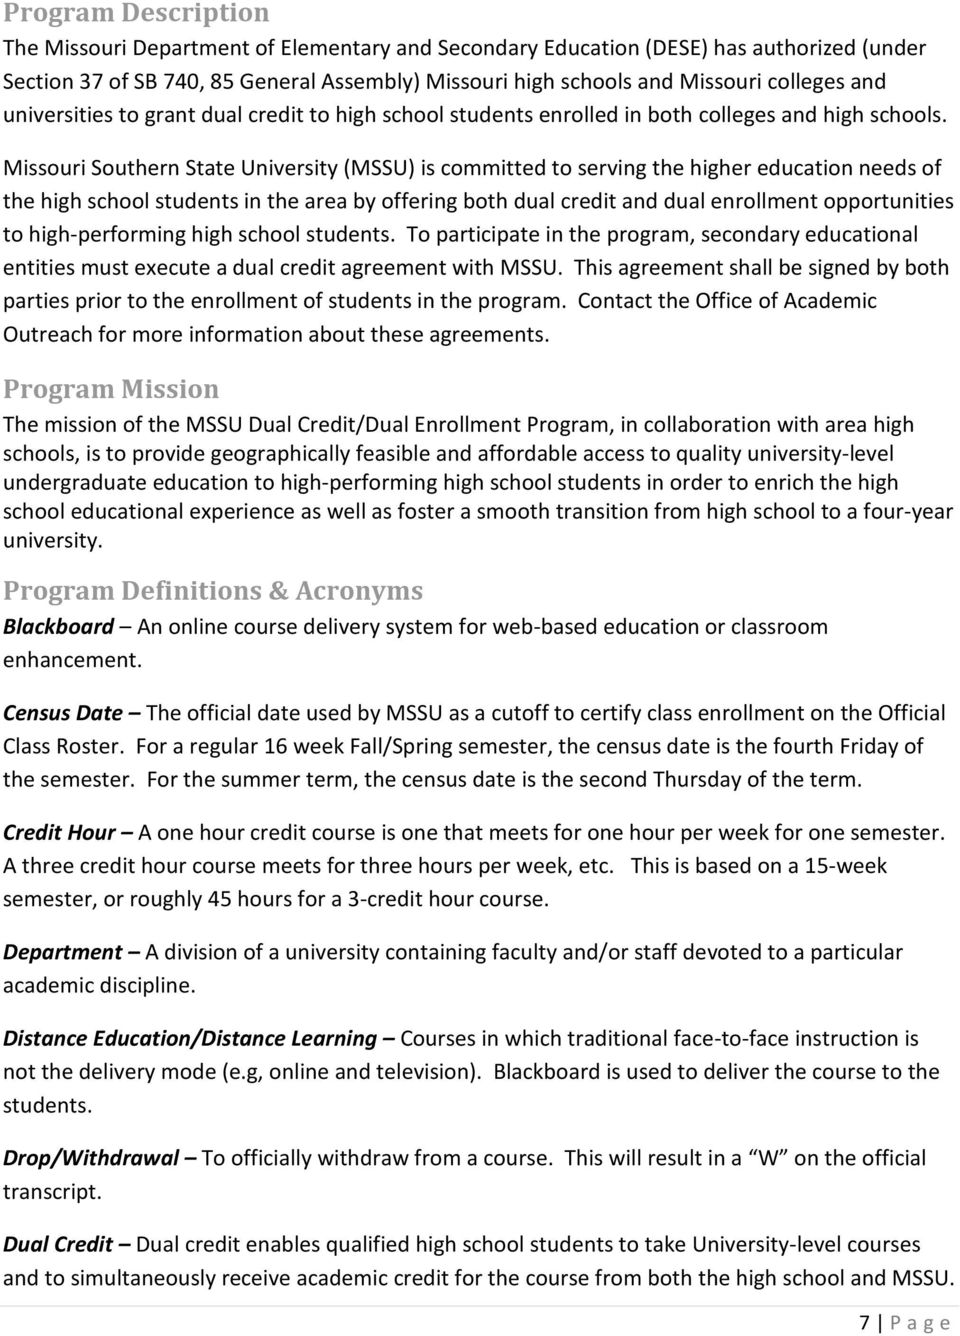 Missouri Southern State University (MSSU) is committed to serving the higher education needs of the high school students in the area by offering both dual credit and dual enrollment opportunities to